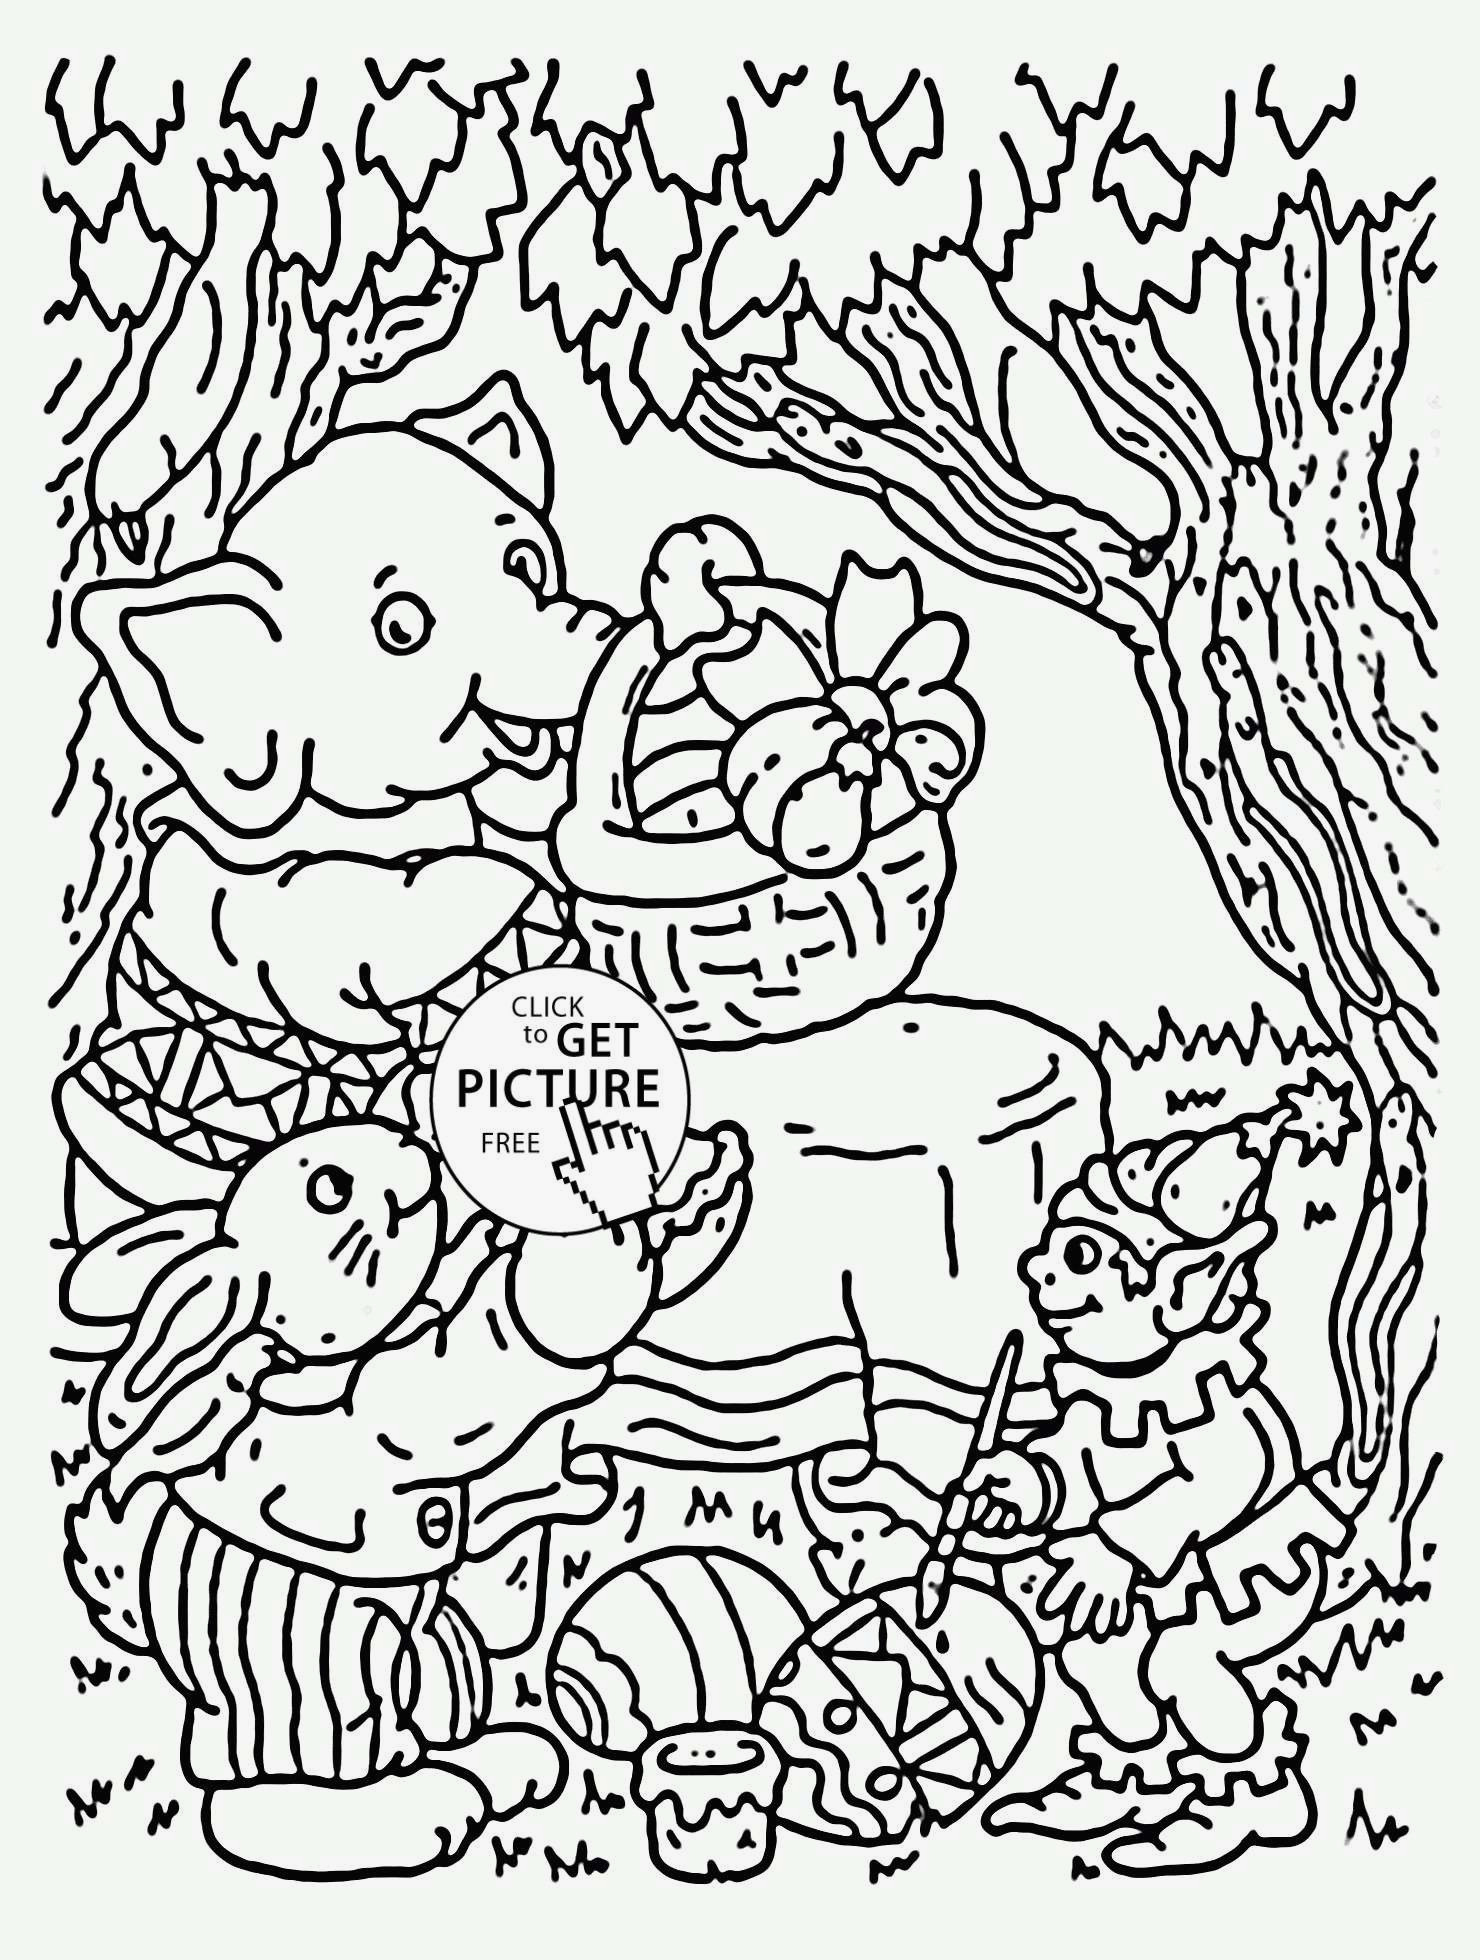 Christmas Animals Coloring Pages Printable With Muppets Animal Fresh Free Scooby Doo